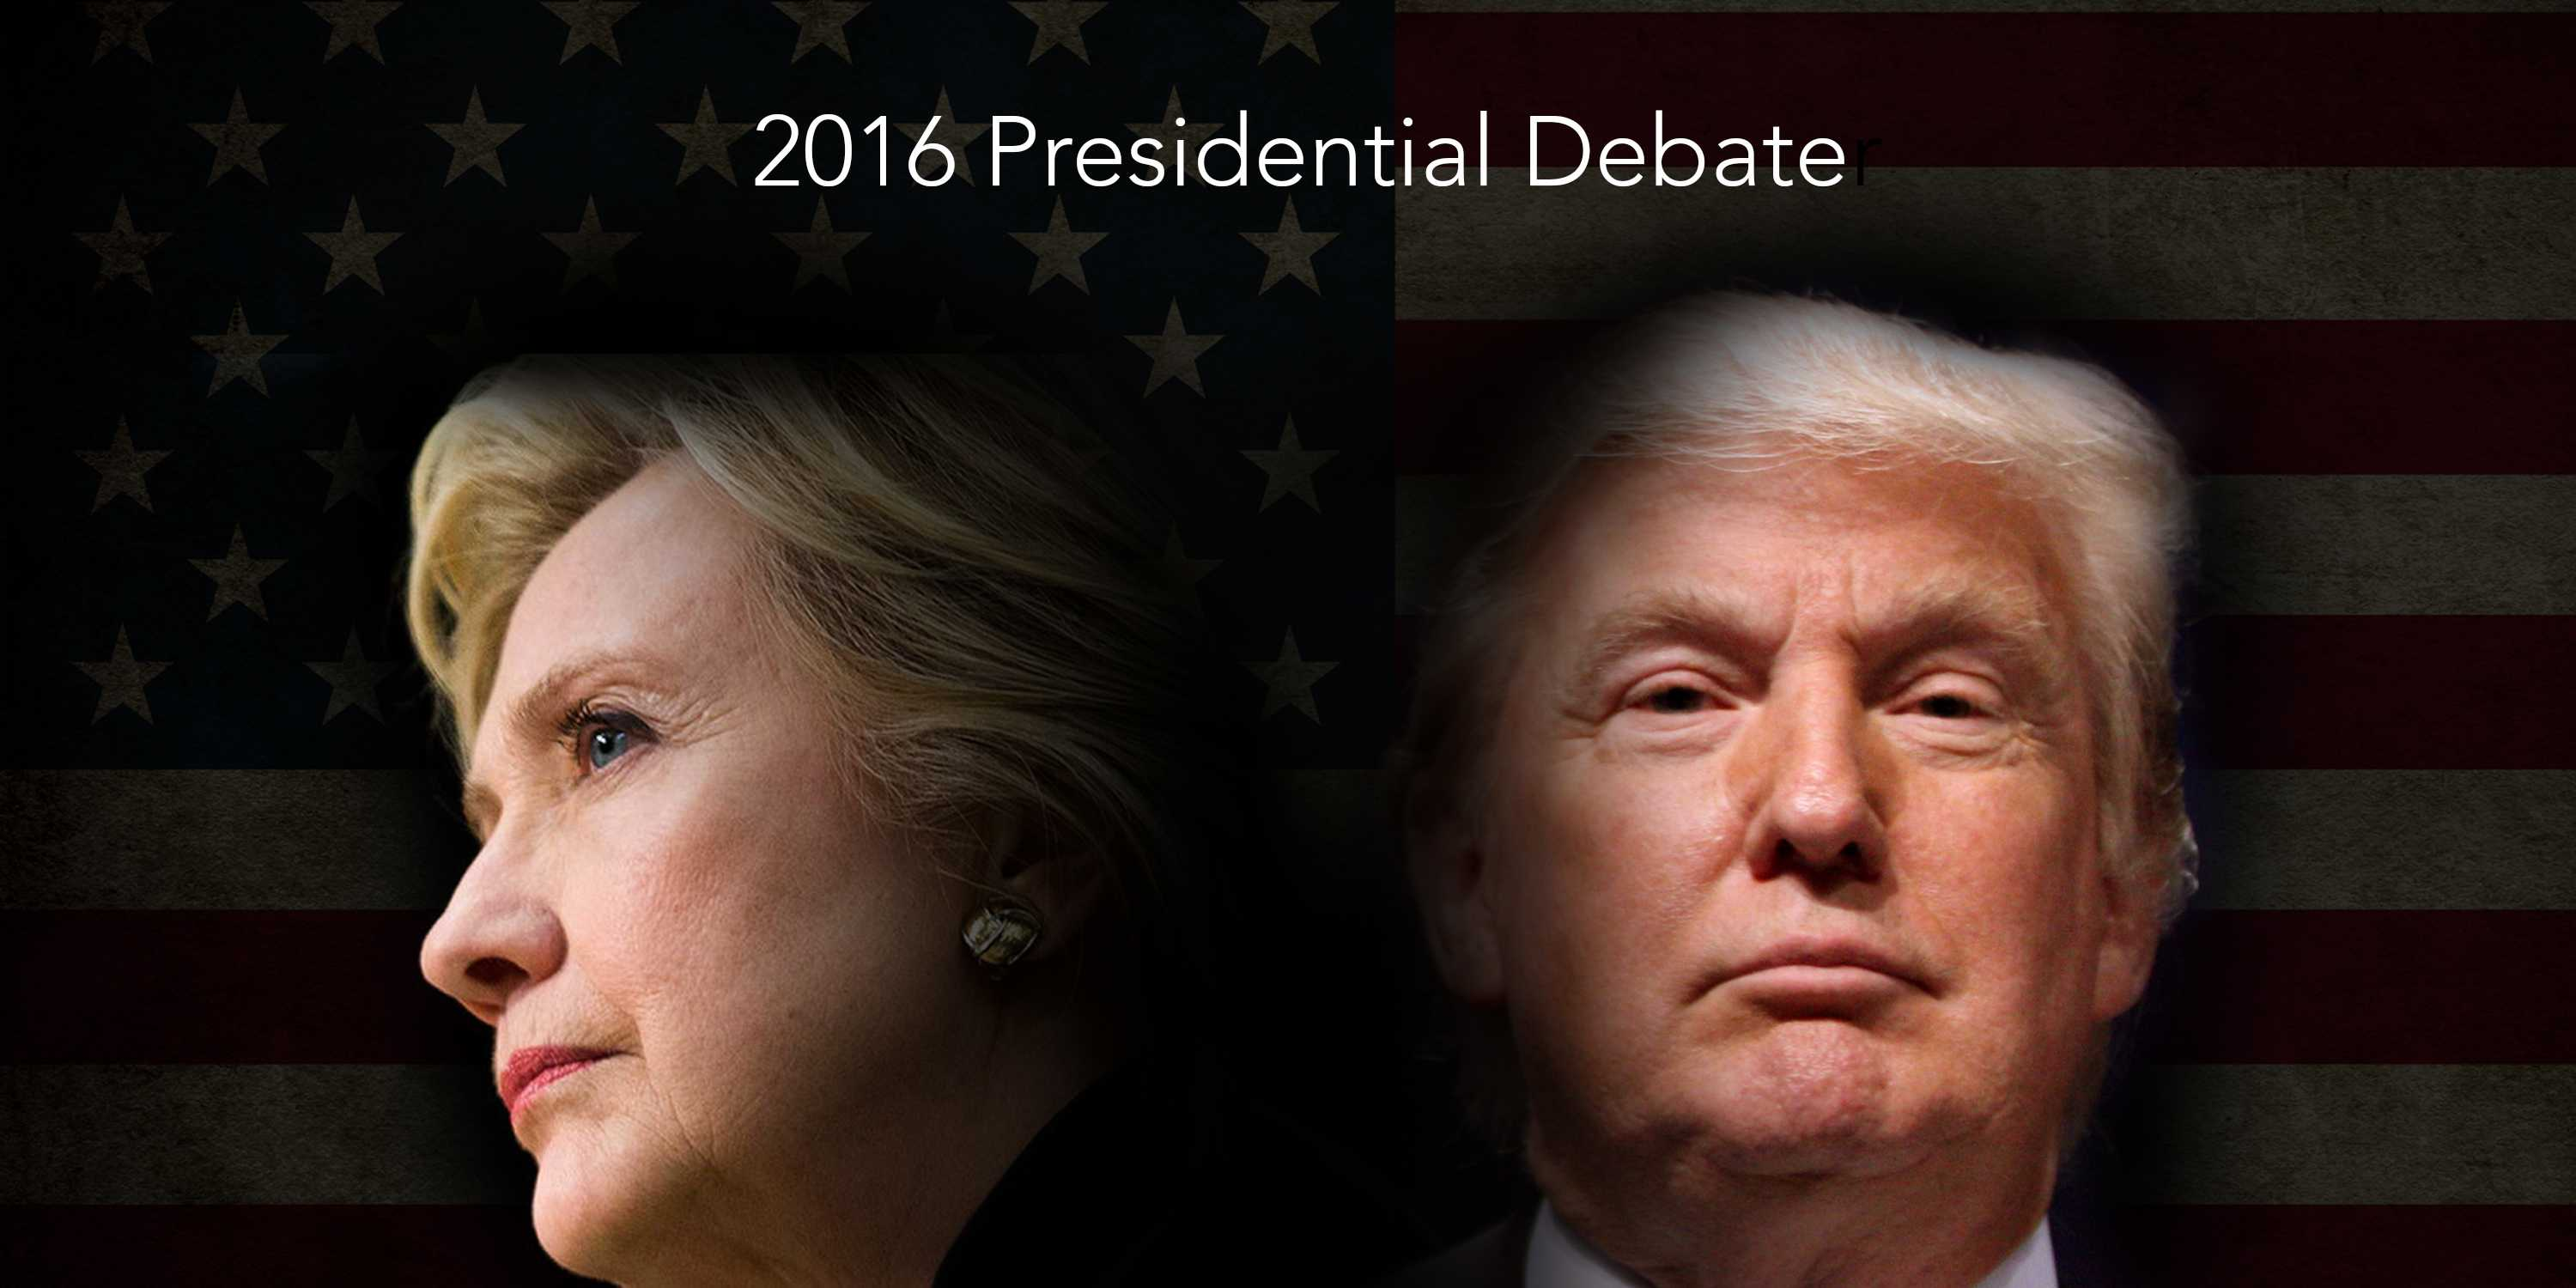 Debate Overview: Best arguments and what stood out